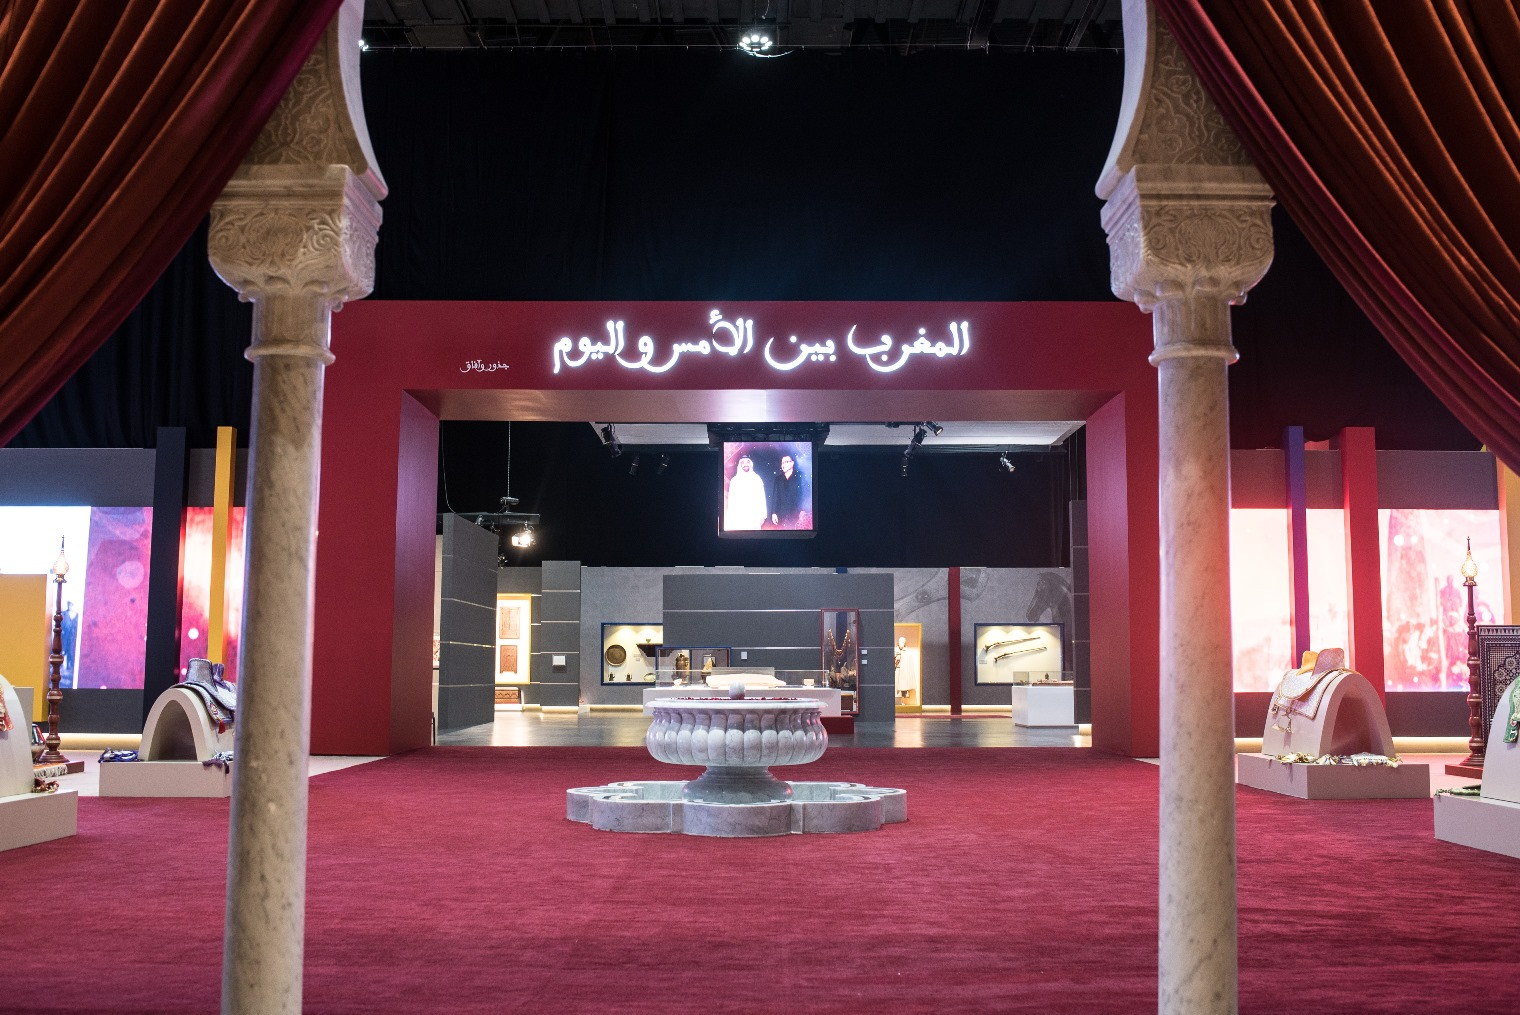 museum of moroccan heritage showcases rare archaeological exhibits